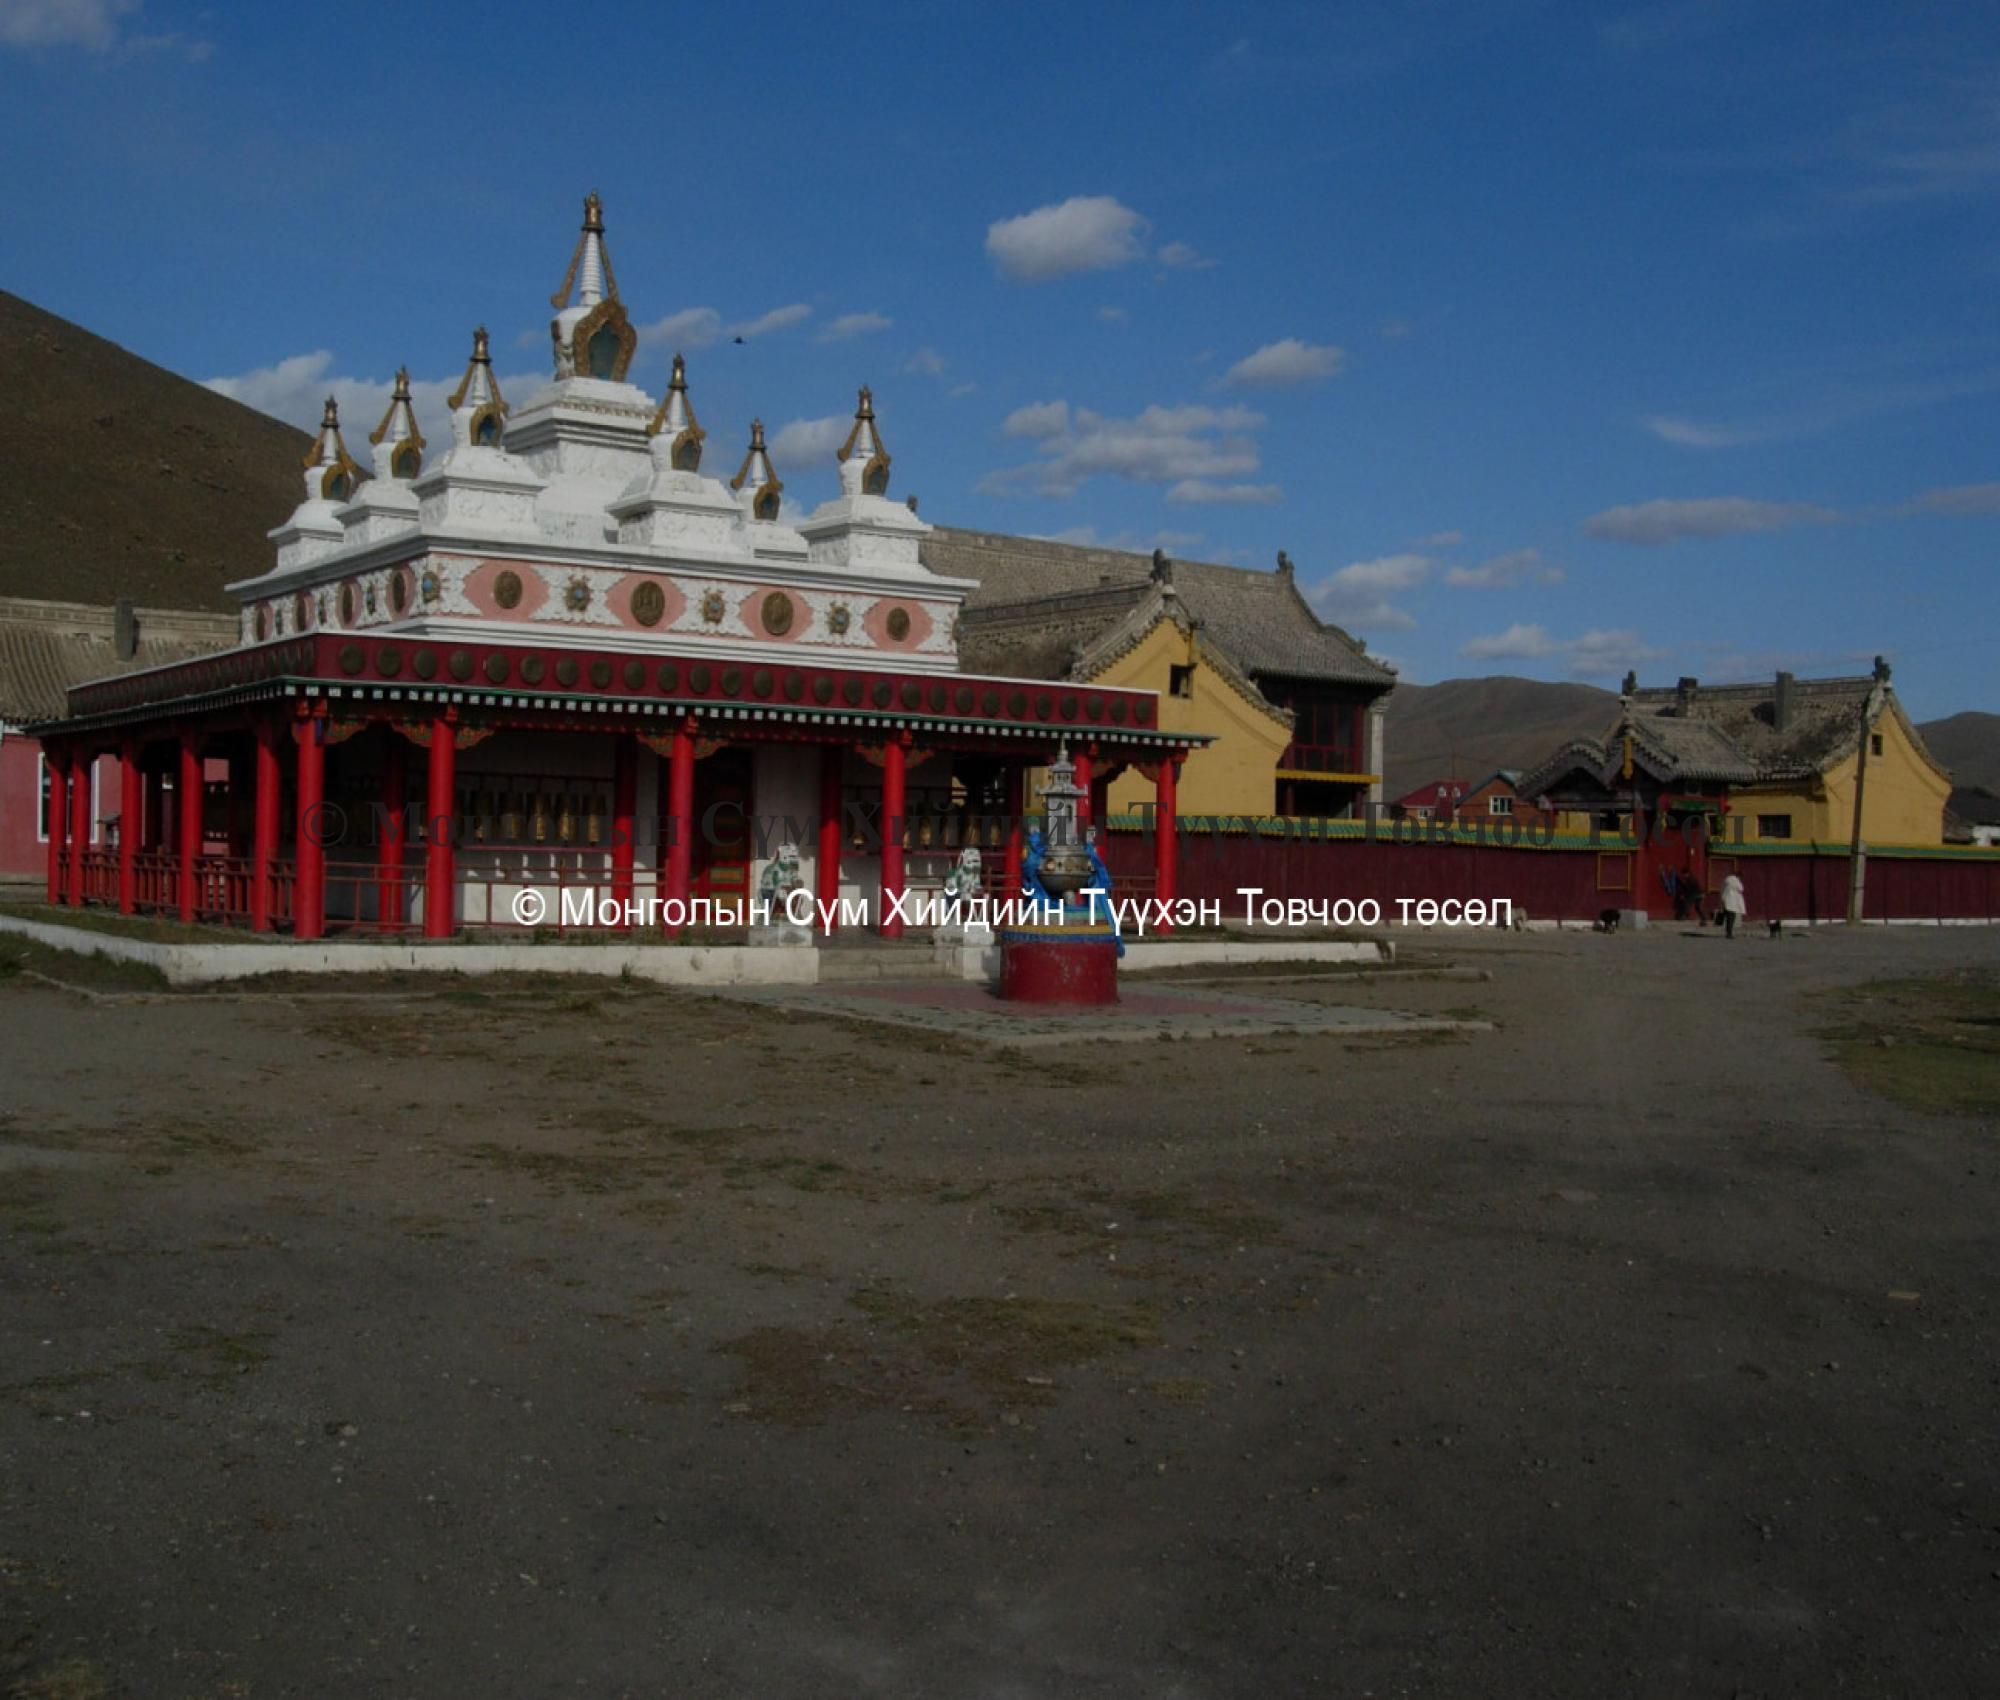 A new stupa west of the Palace 2007